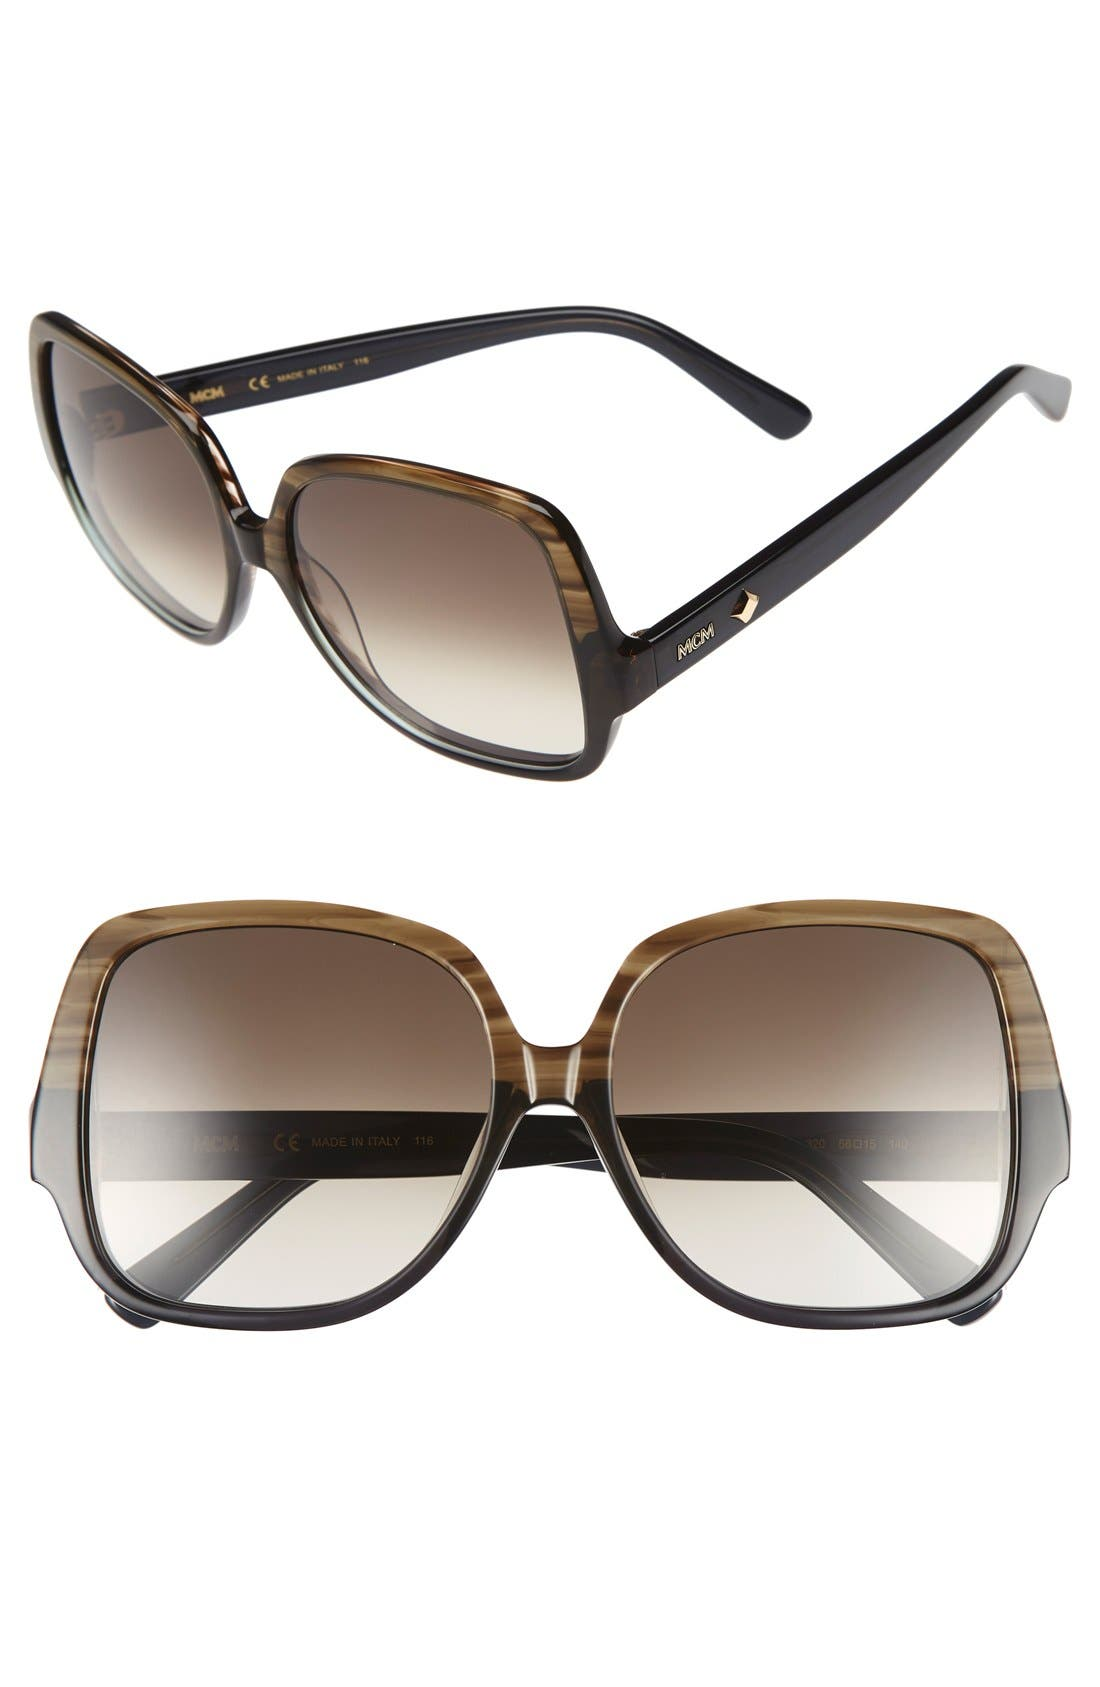 MCM 58mm Square Sunglasses